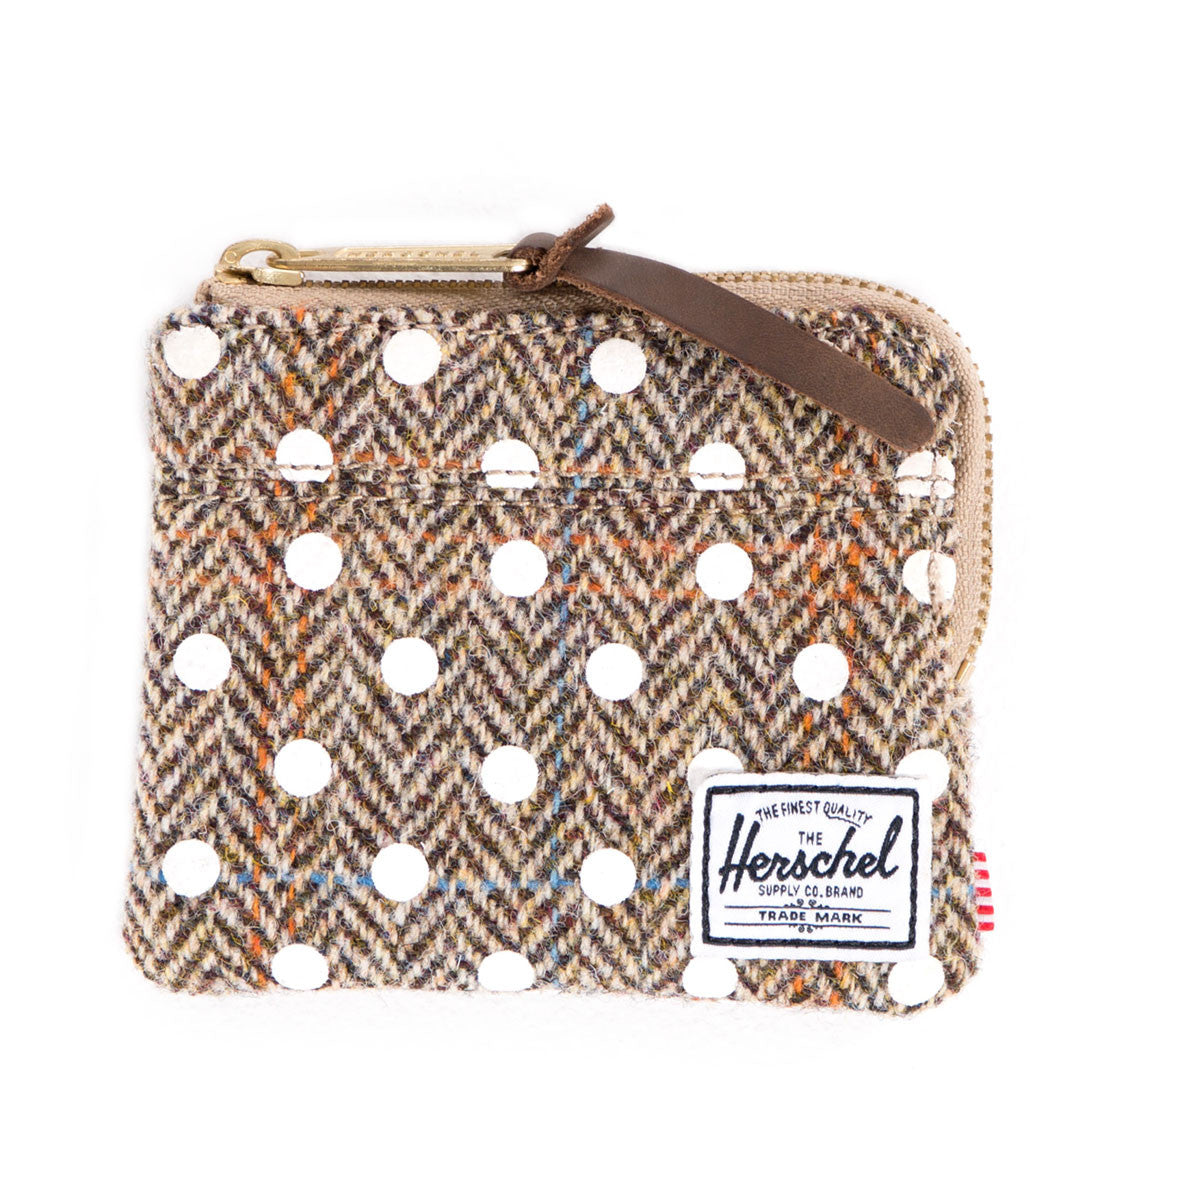 Herschel Supply Co.: Johnny Wallet - Harris Tweed / White Polka Dot flat